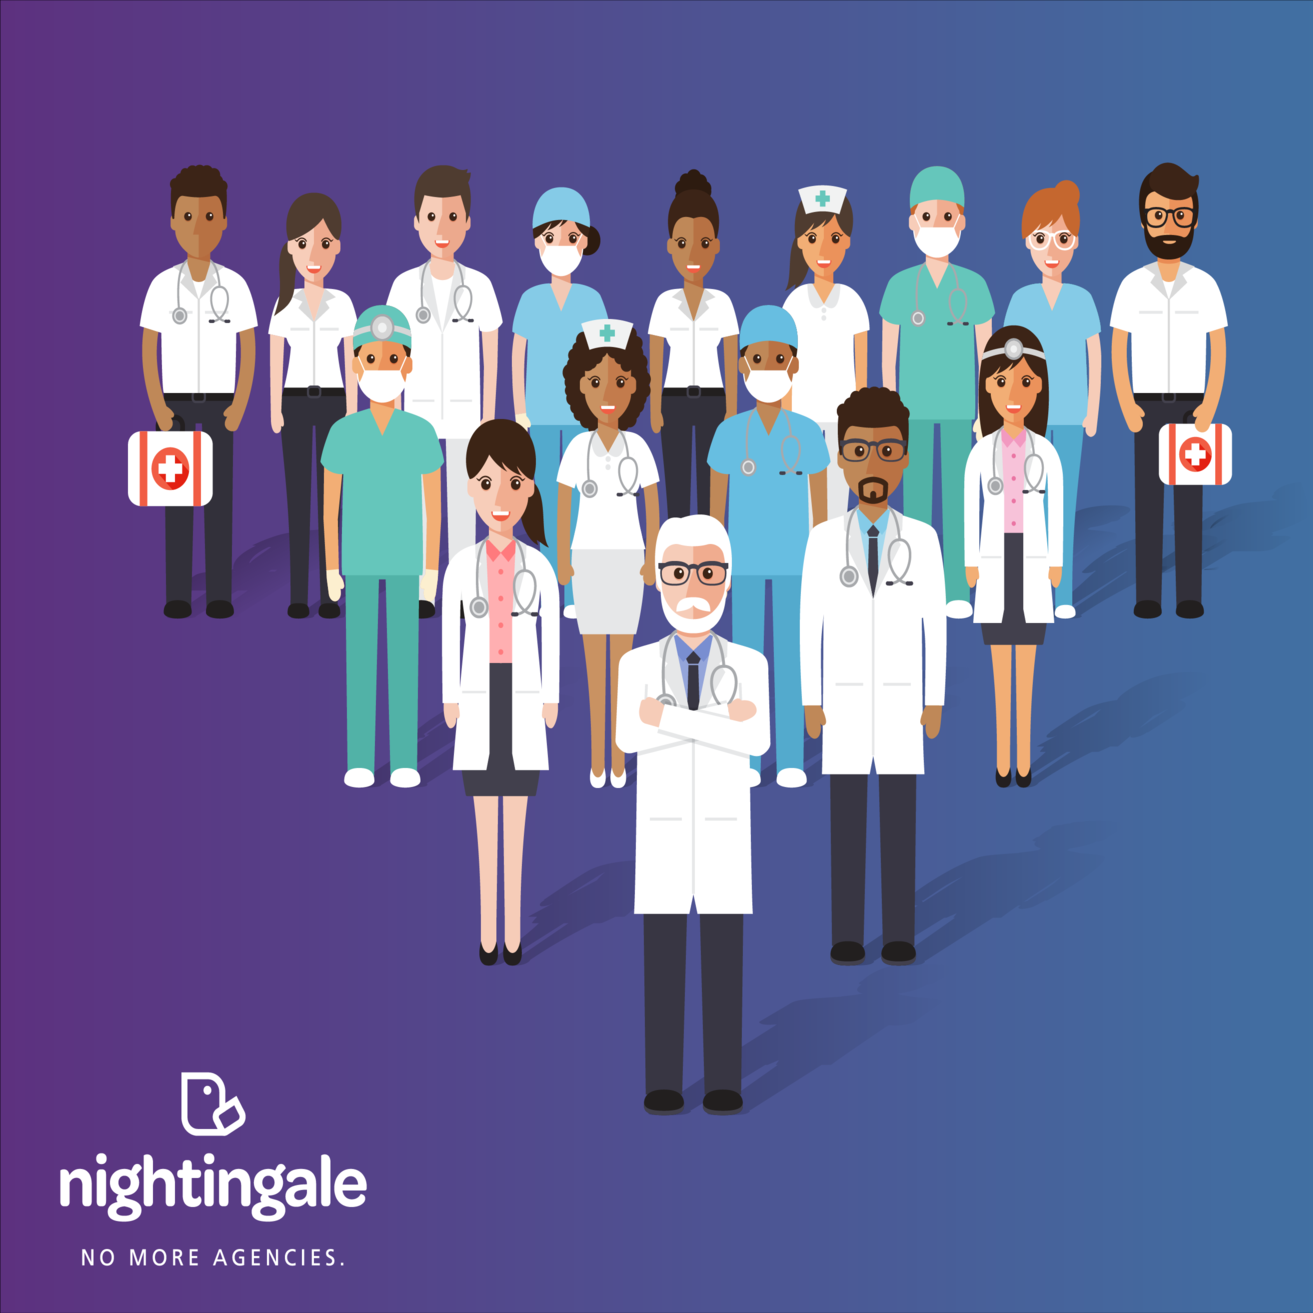 Nightingale App - Boss Your Brand launches this revolutionary app into the health sector to disrupt the current agency industry.